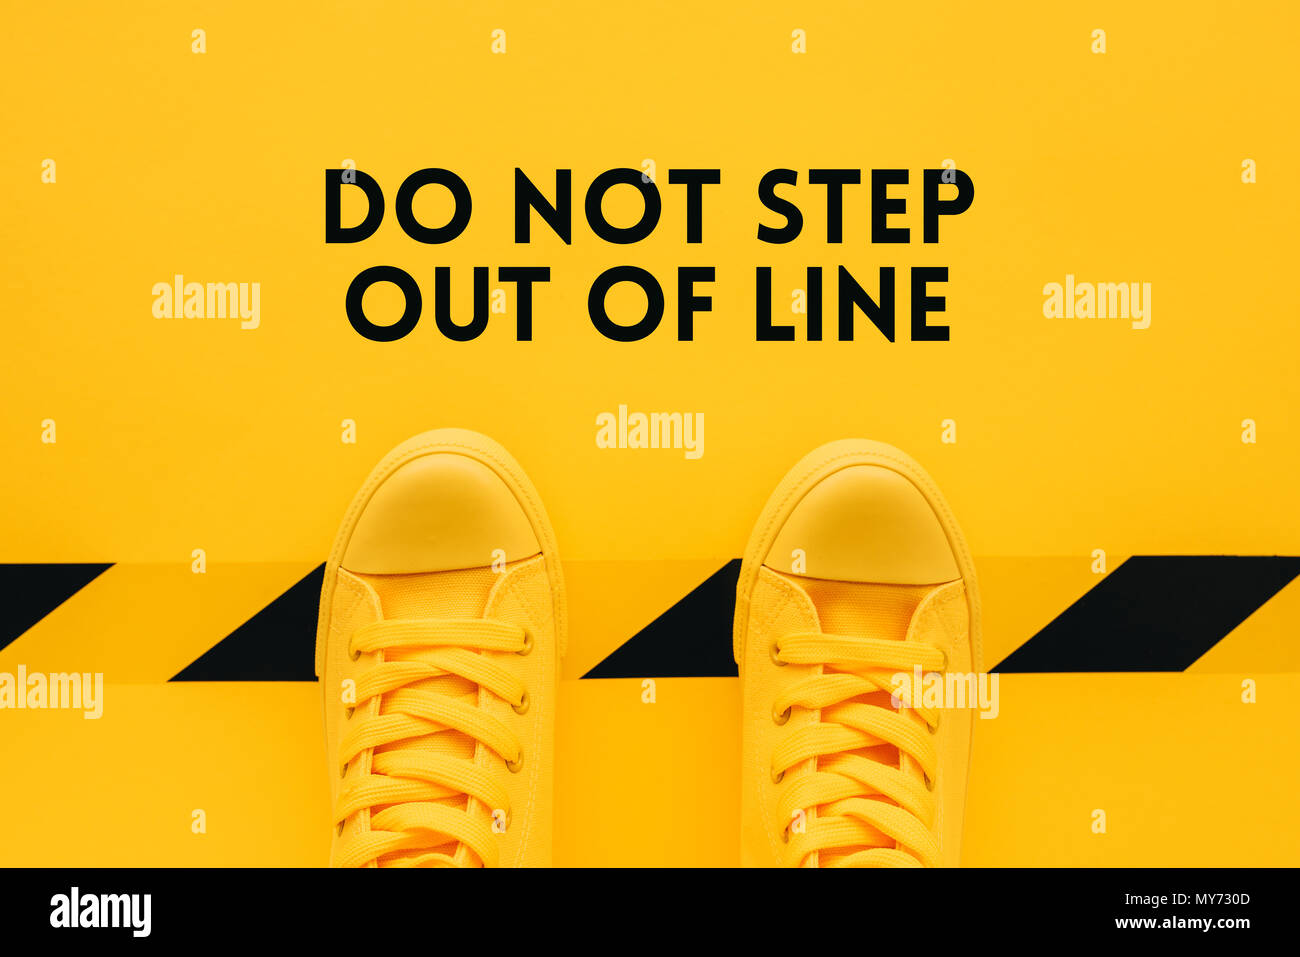 Do not step out of line, person in yellow sneakers breaking the rules and acting in an inappropriate or unacceptable way - Stock Image